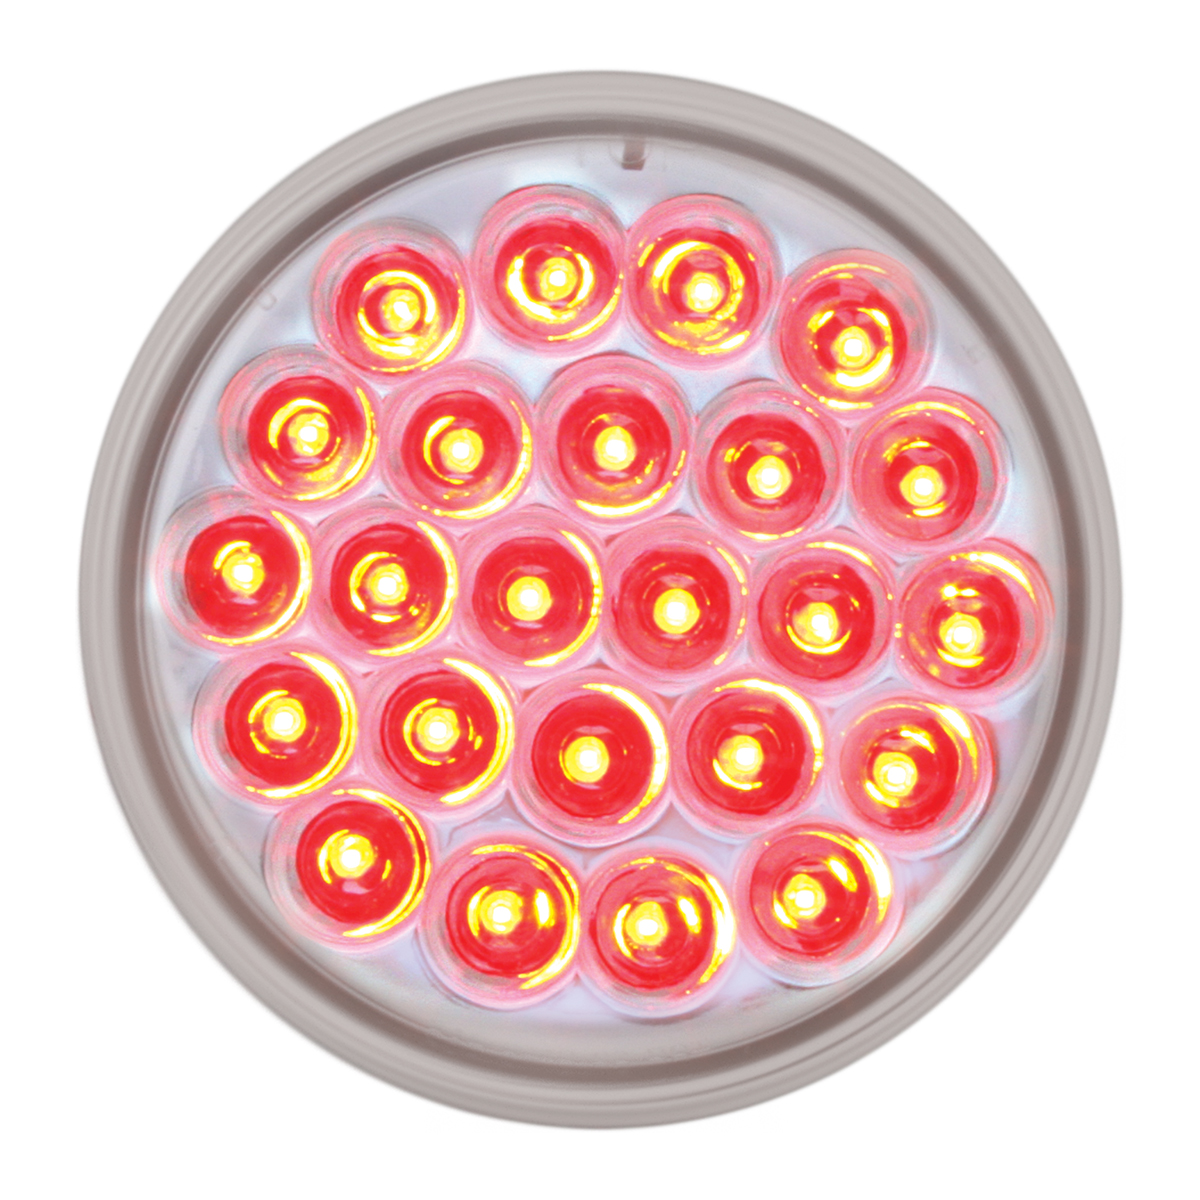 """4"""" Round Synchronous/Alternating Pearl LED Strobe Light in Red/Clear"""